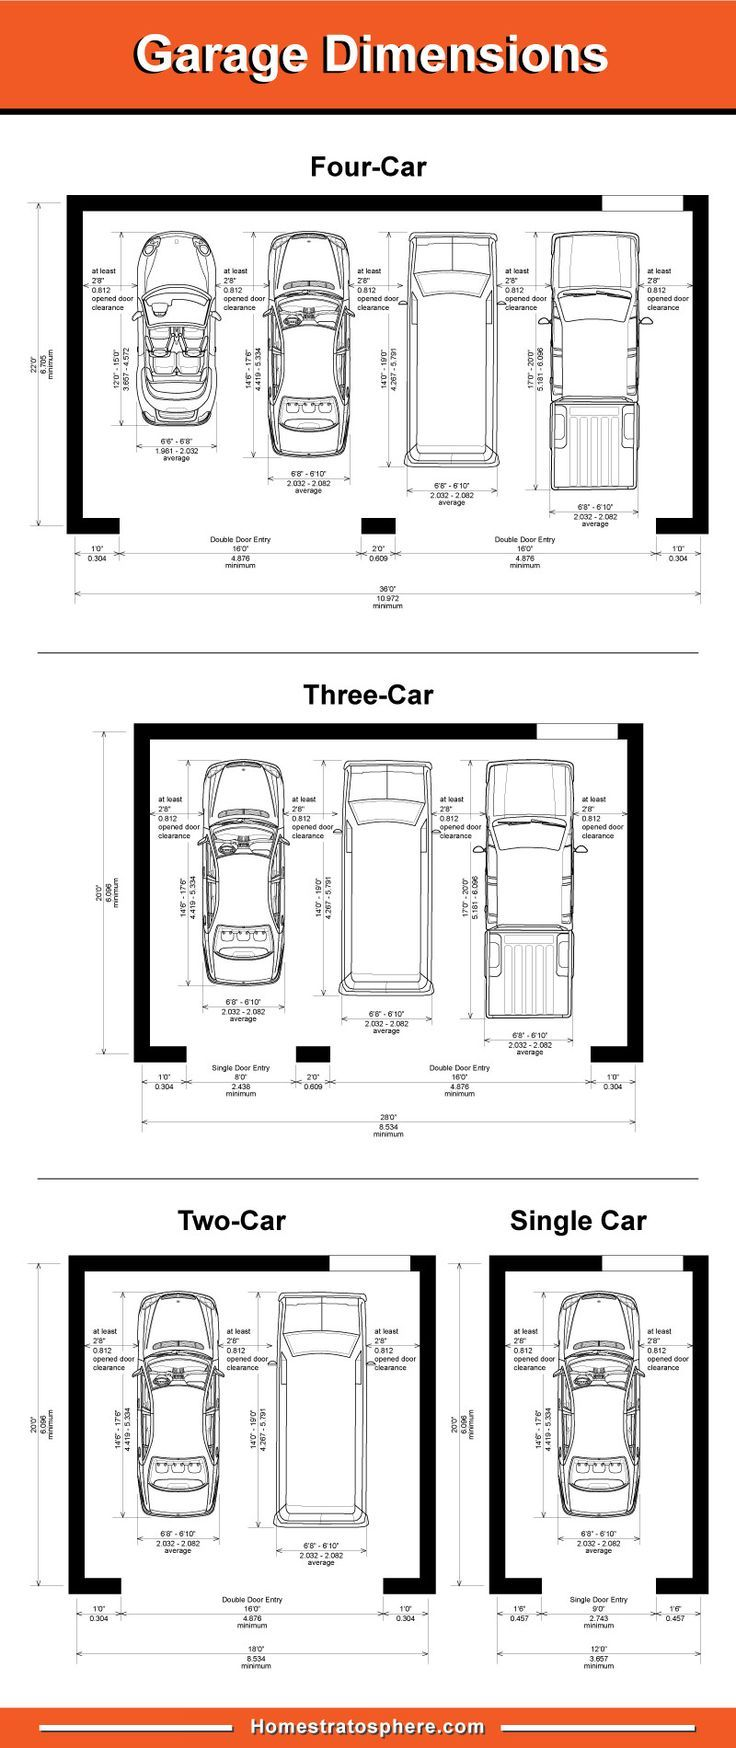 Standard Garage Dimensions For 1 2 3 And 4 Car Garages Diagrams Garage Dimensions Garage Floor Plans Car Garage